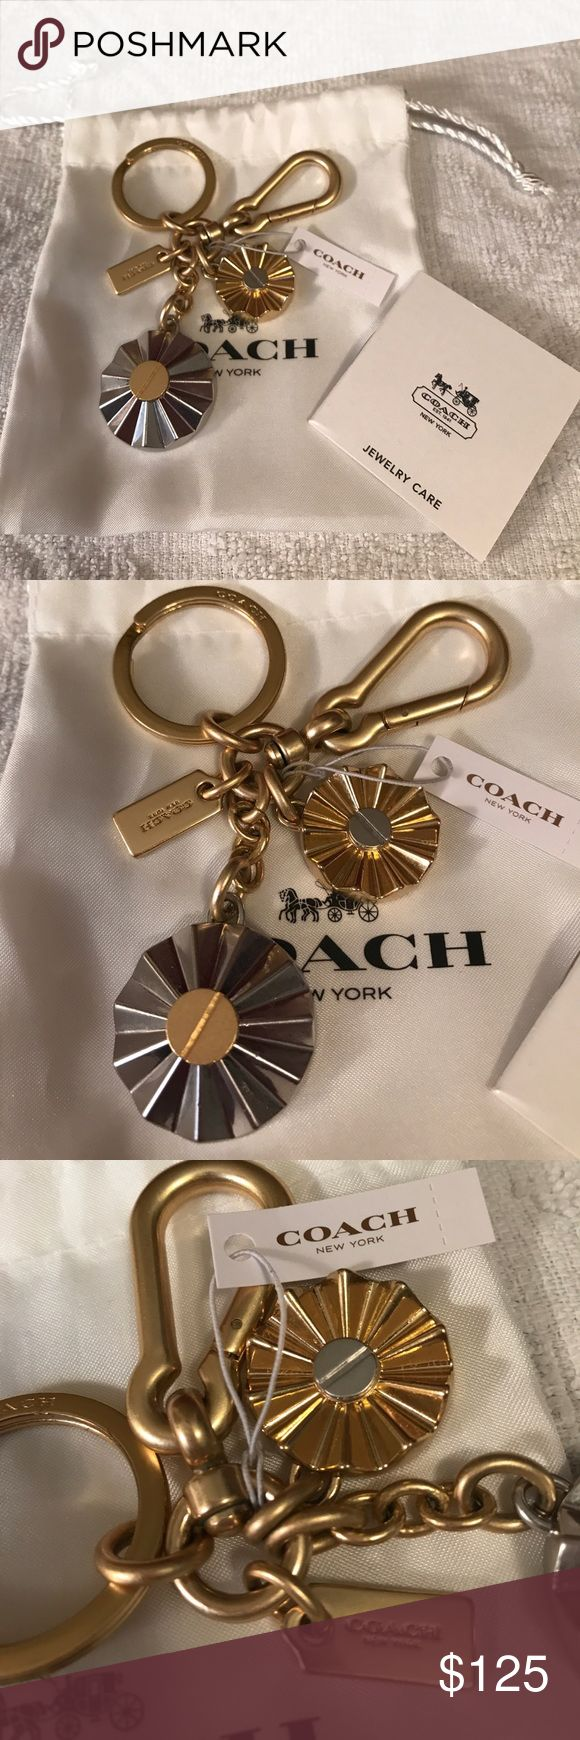 Coach Daisy Rivet Gold & Silver Key Chain Fob🎁💐 Coach Daisy Rivet Gold & Silver Key Chain Fob🎁💐 brand-new with tag, comes with dust bag and jewelry care book. I bought this at coach.com online. They do not sell these anymore so this becomes RARE now I can't find it anywhere on the Internet. You can use this on your handbag hang it on your purse or any bags you have will bring class and elegance. Comes from a non-smoking home pet free. I ship Monday Wednesday Friday. Coach Accessories Key…